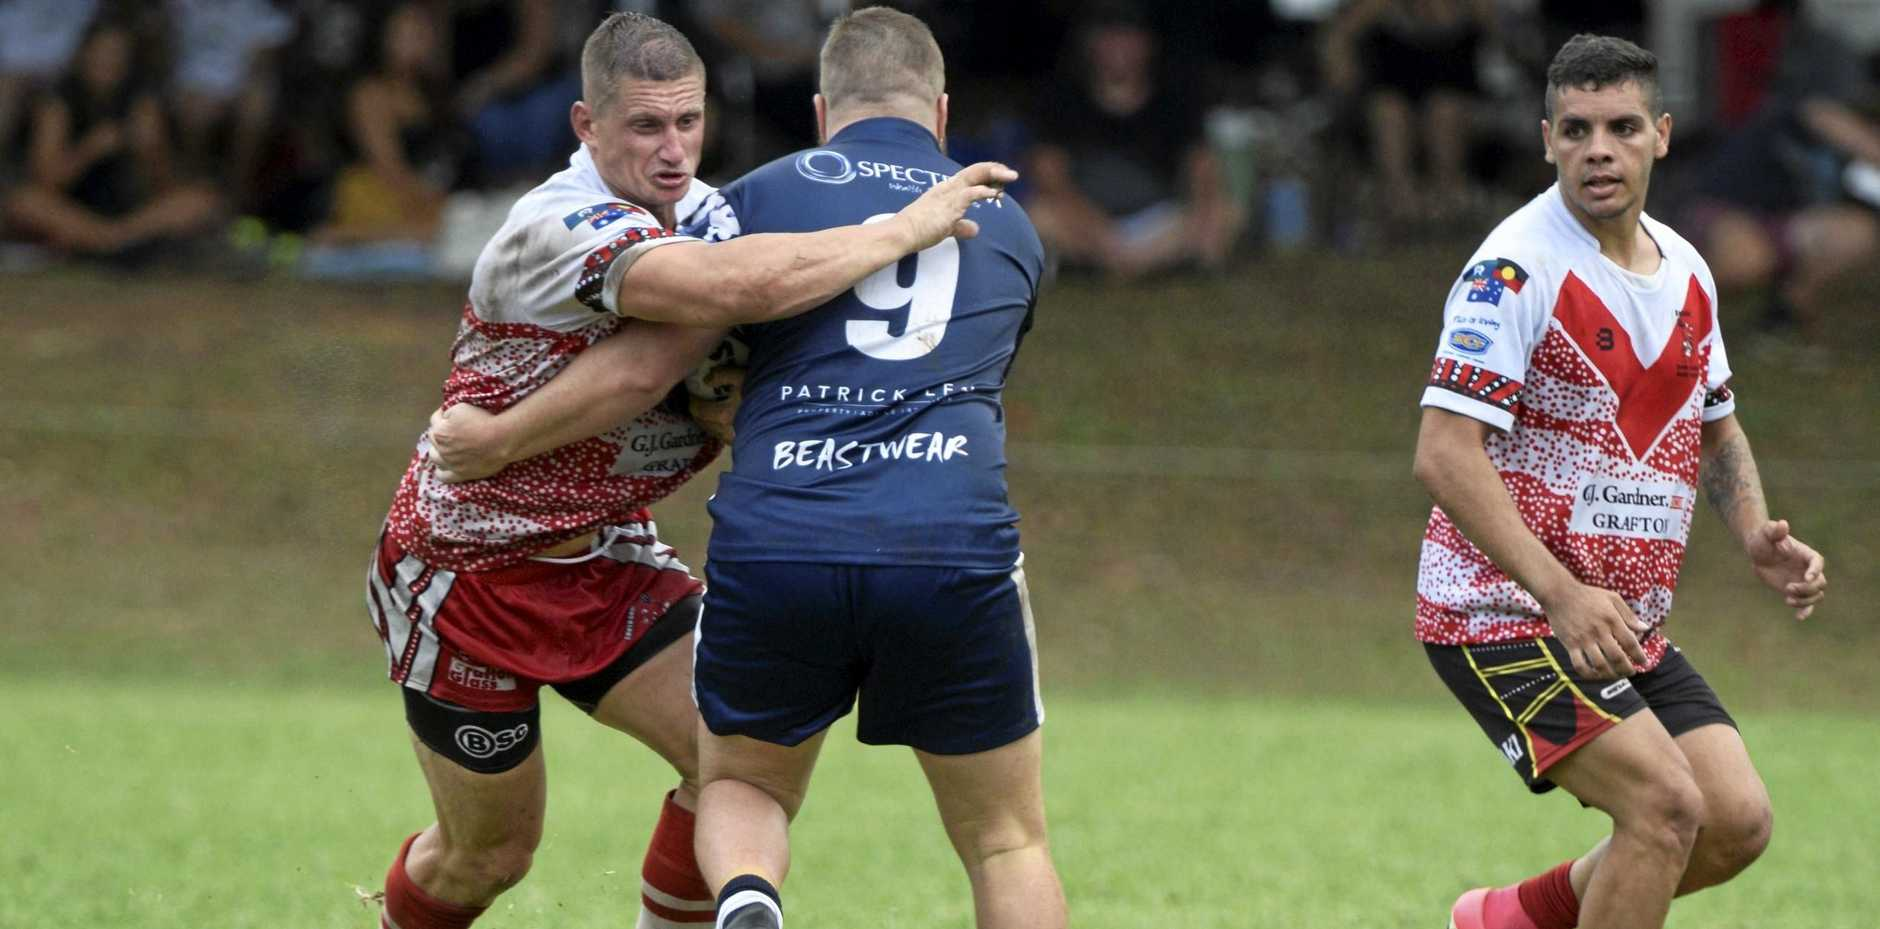 HEAVY ARTILLERY: South Grafton Rebels captain Karl Woodley will welcome extra support in the forward pack for the side's clash with Sawtell Panthers tomorrow.